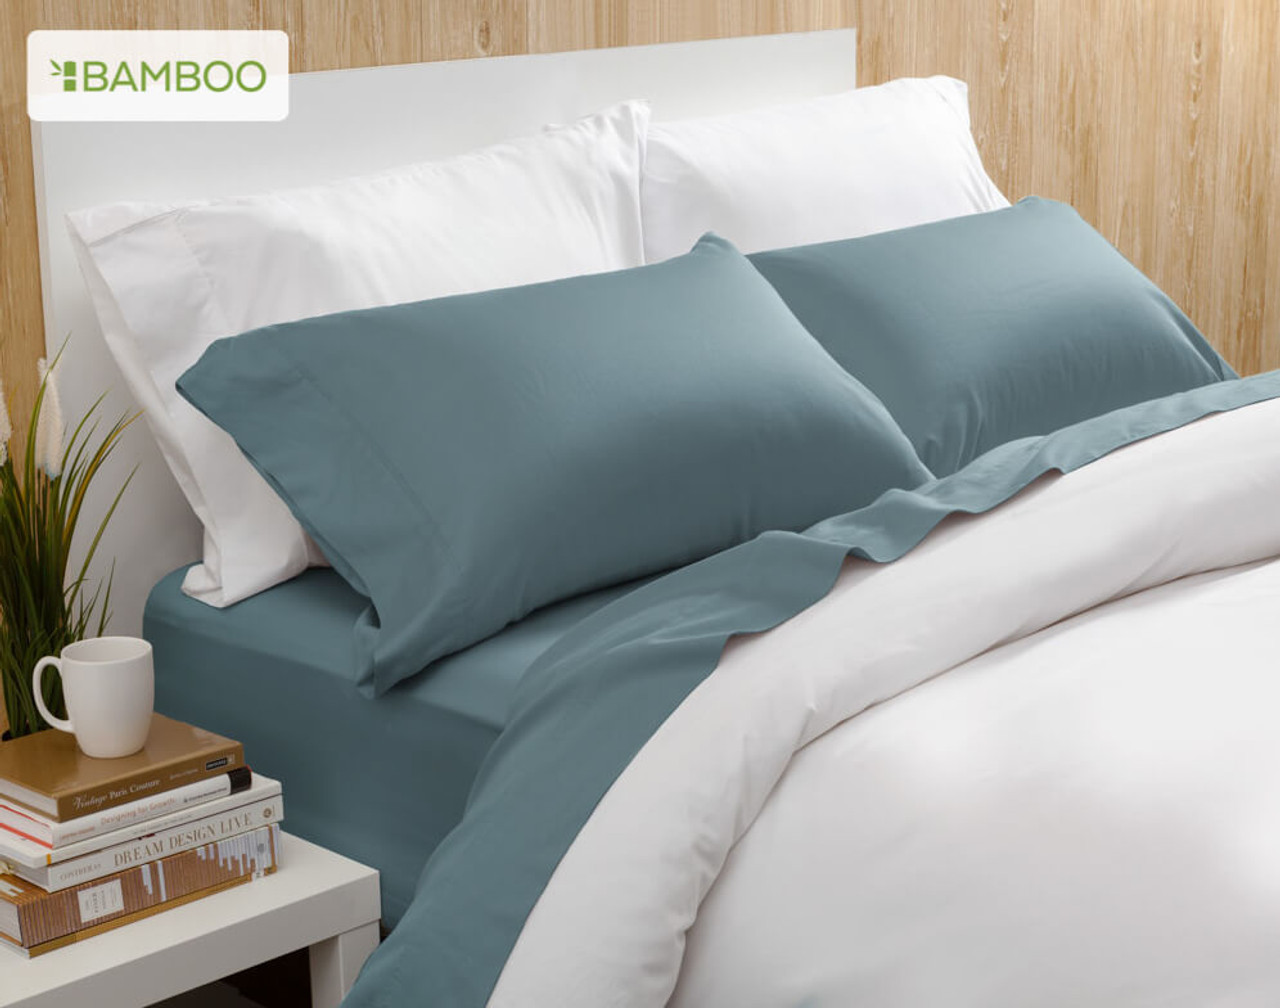 Bamboo Cotton Sheeting in blue green Spruce